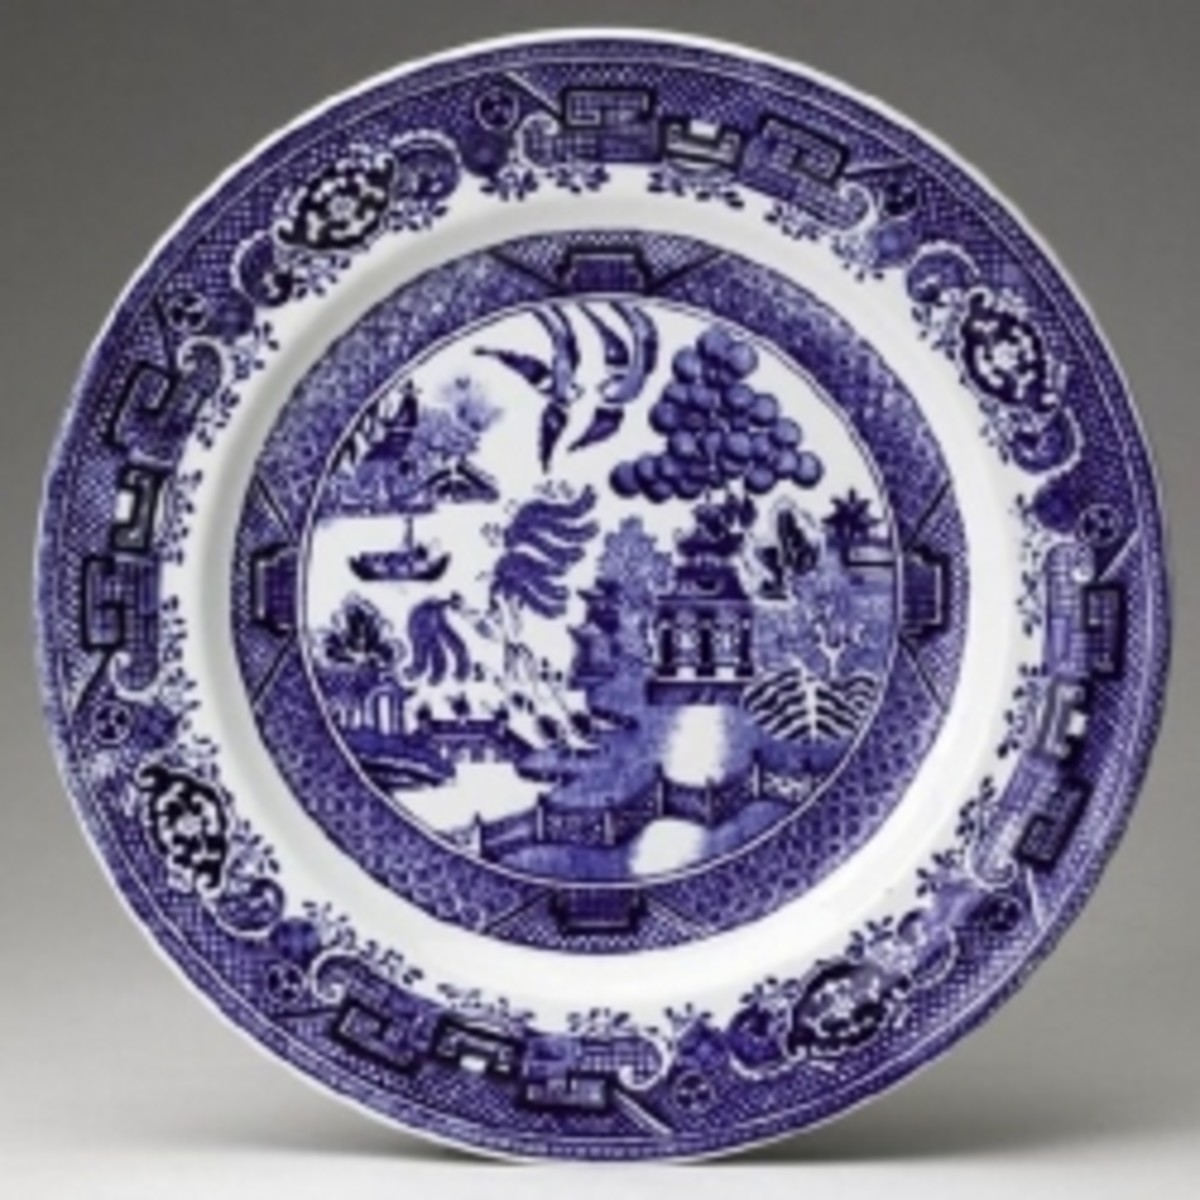 The Blue Willow Pattern